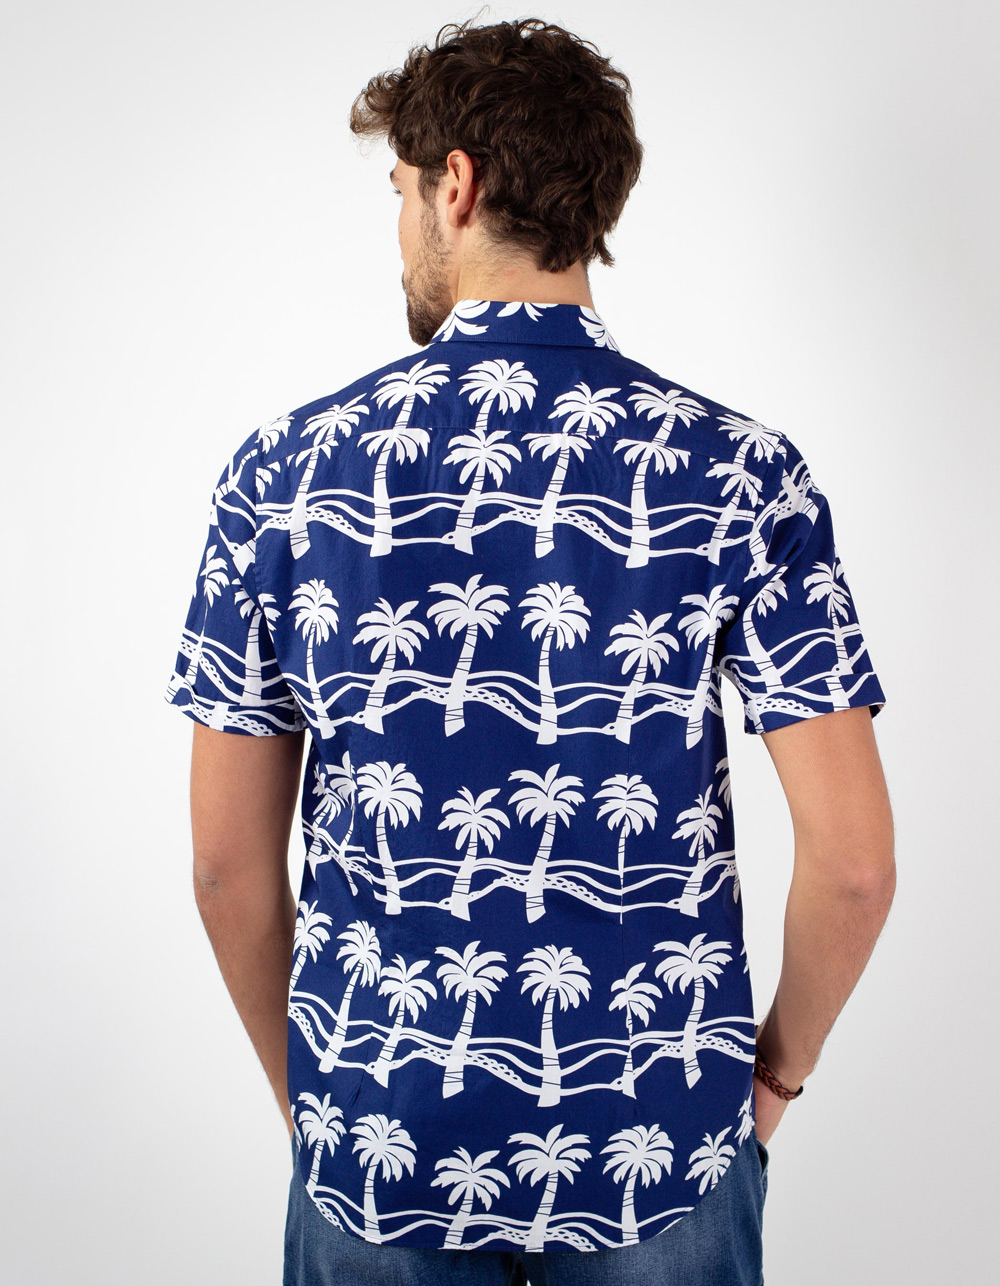 Camisa azul estampada con palmeras blancas - Backside